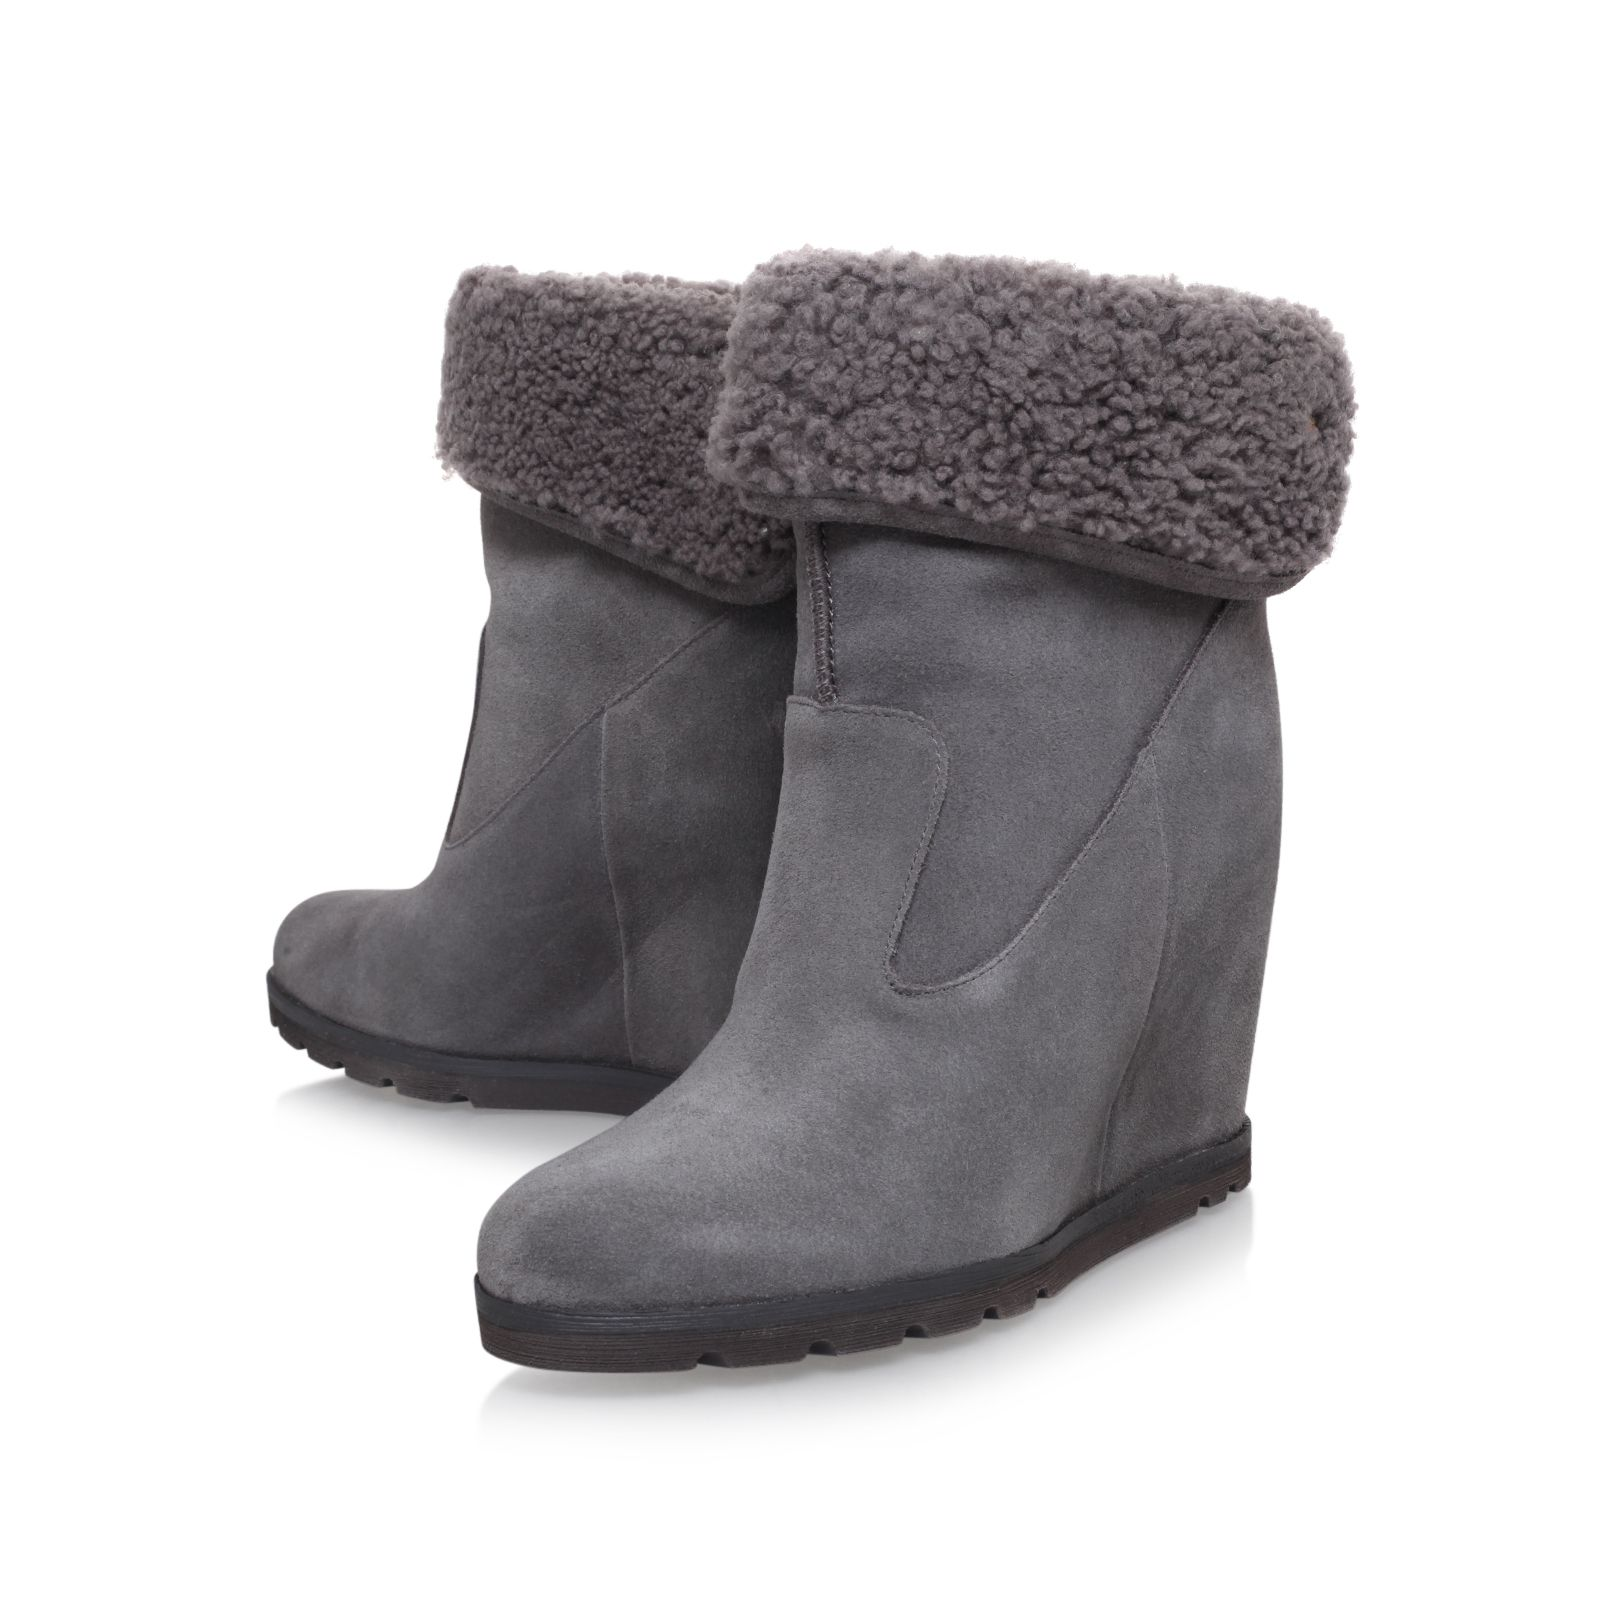 Boot Shoes Australia Ankle Kyra Grey Flat Suede Ugg By x7qH6 a7be4761f